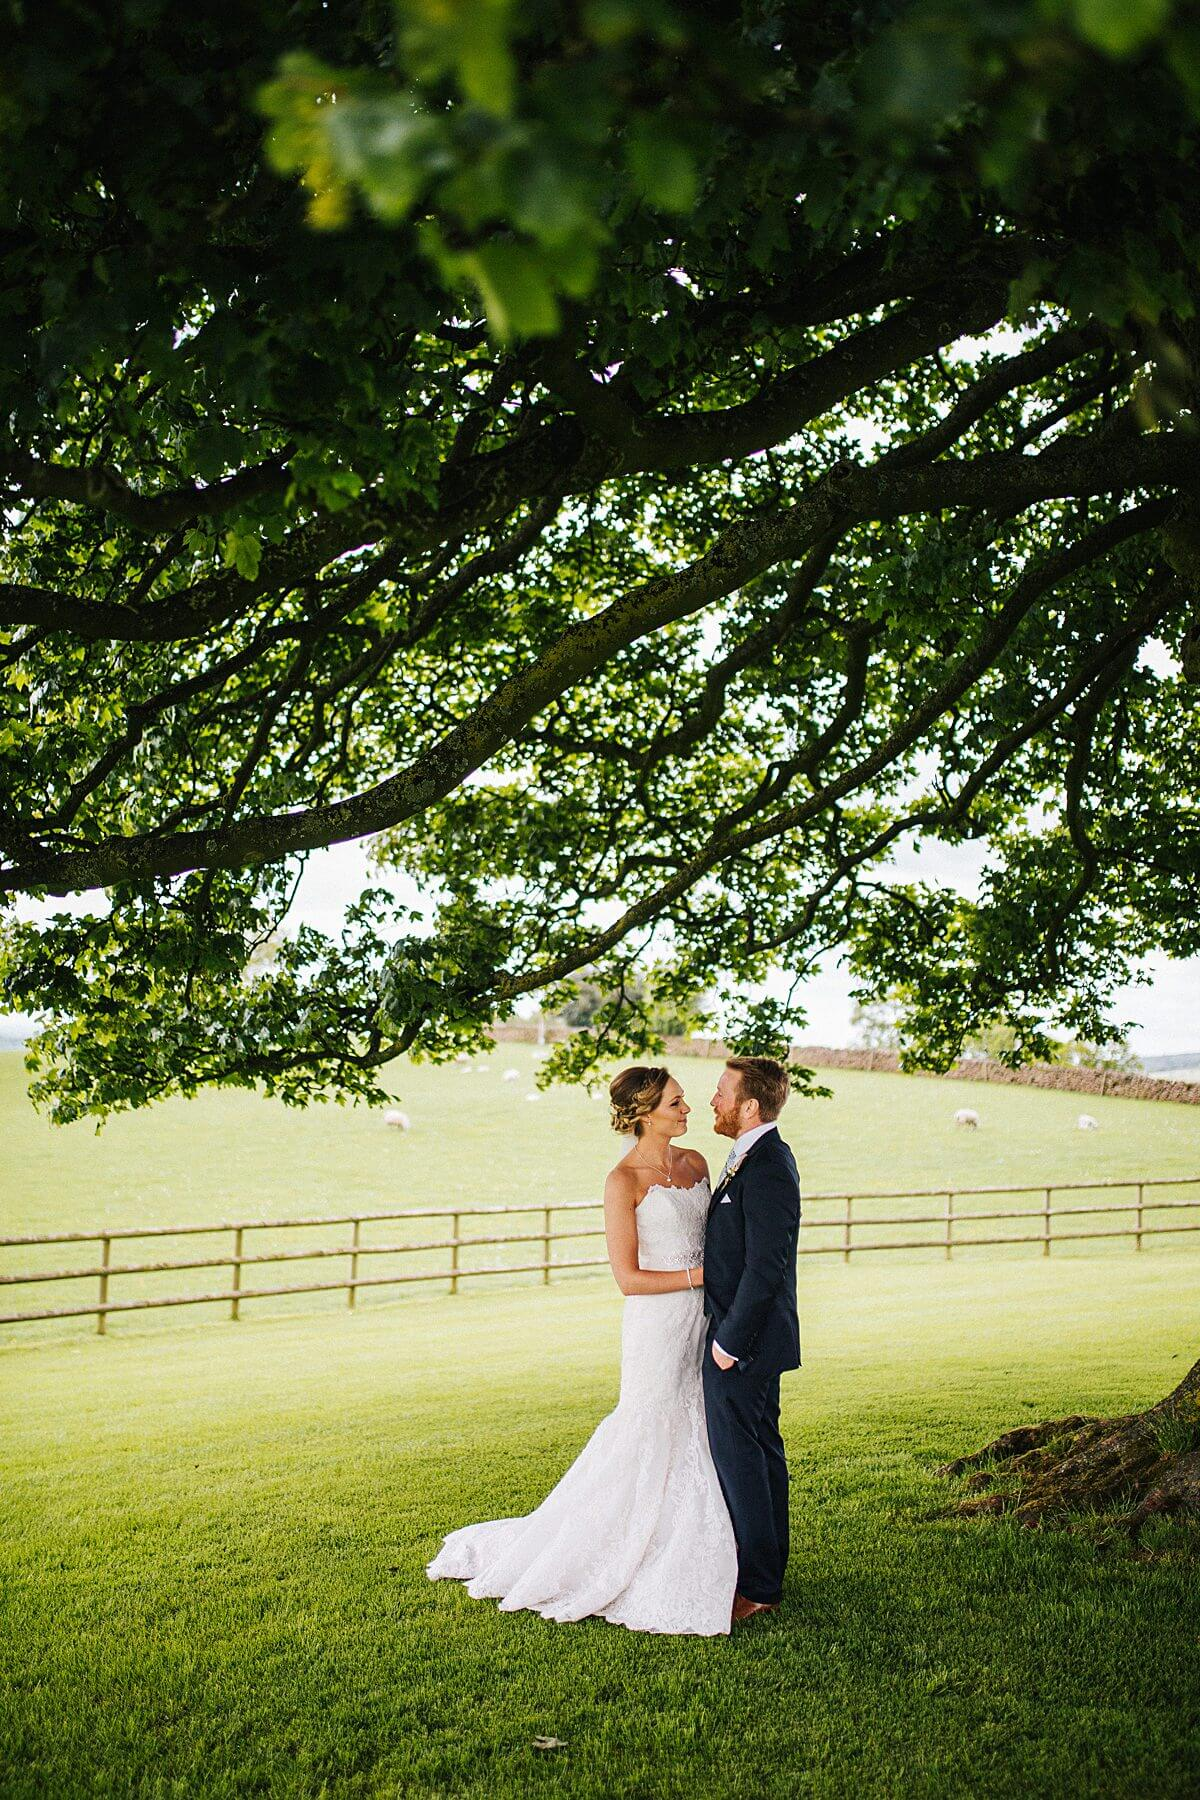 Natural wedding portraits Heaton House Farm